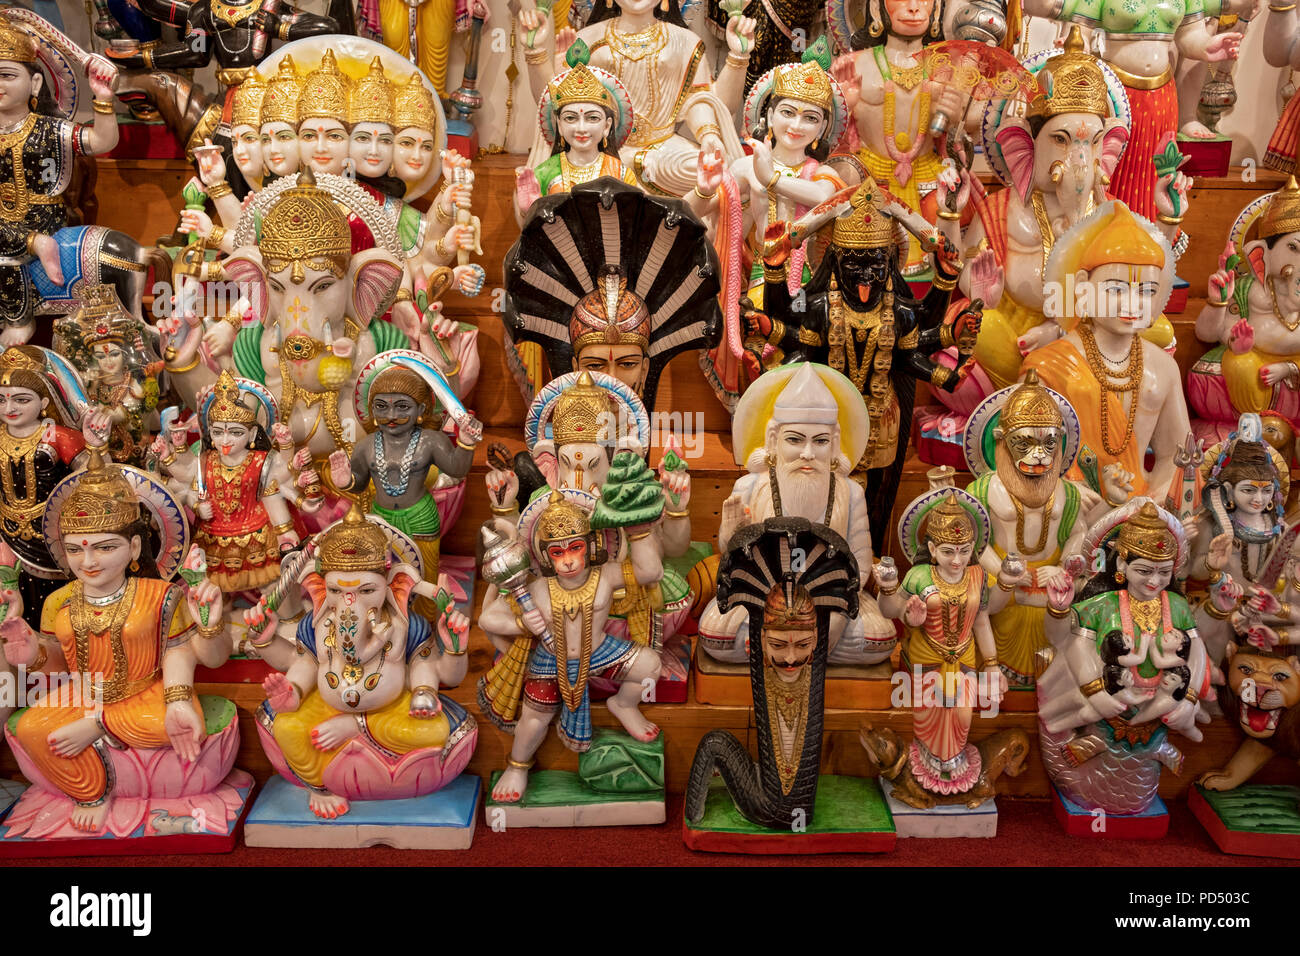 Statues of Hindu deities for sale at a store on Liberty Avenue in South Richmond Hill, Queens, New York City. - Stock Image